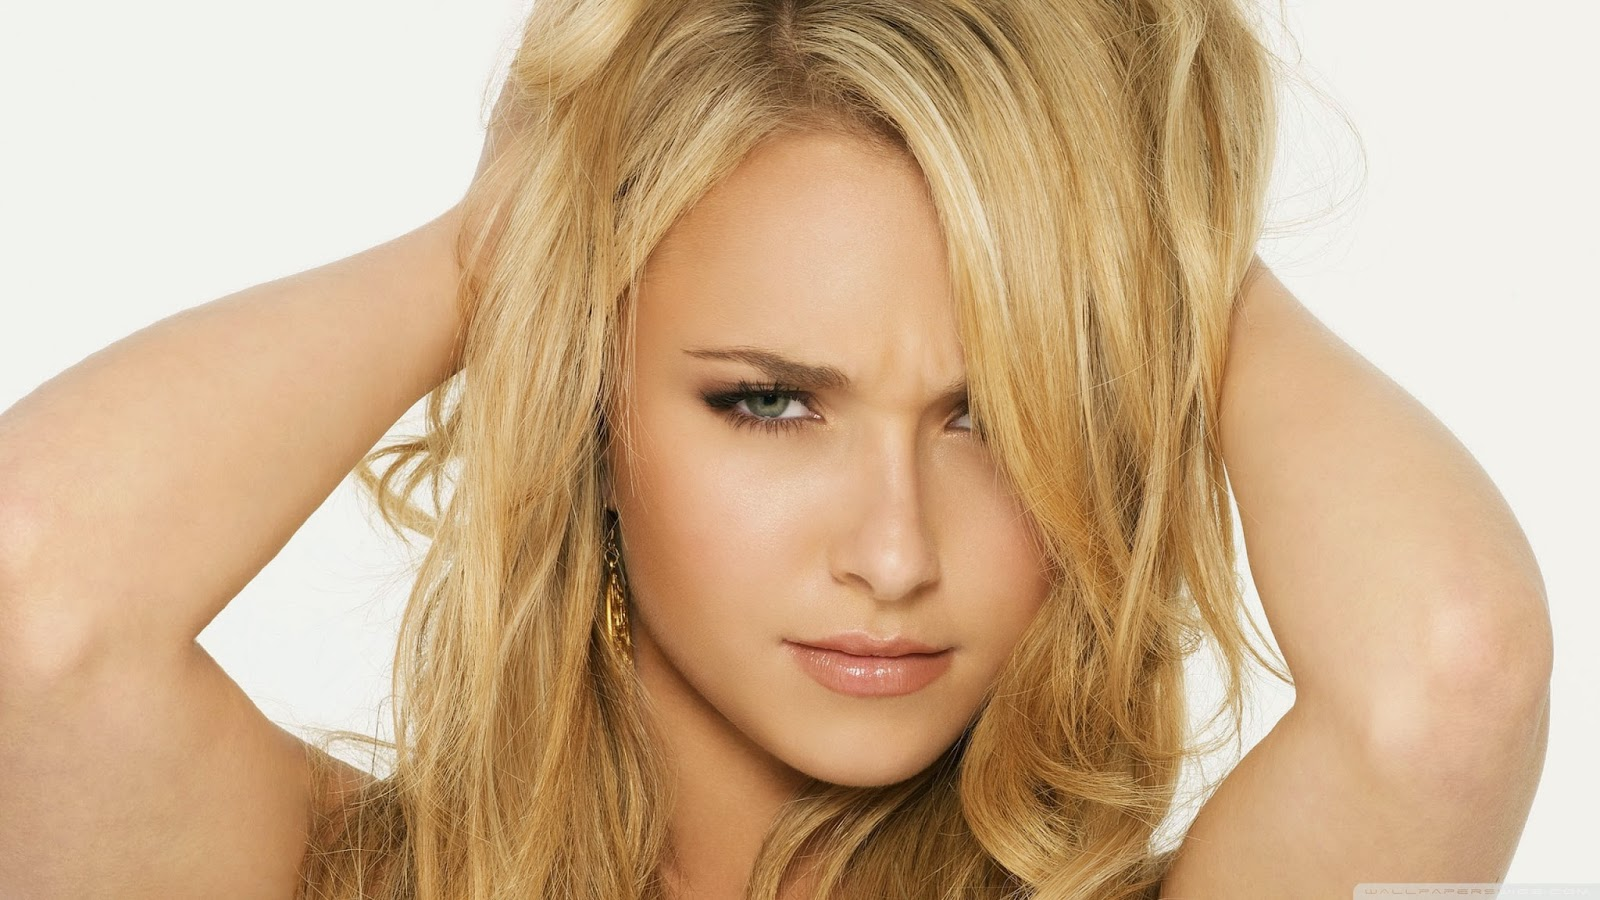 hayden panettiere nashville promo wallpapers - Hayden Panettiere Daily